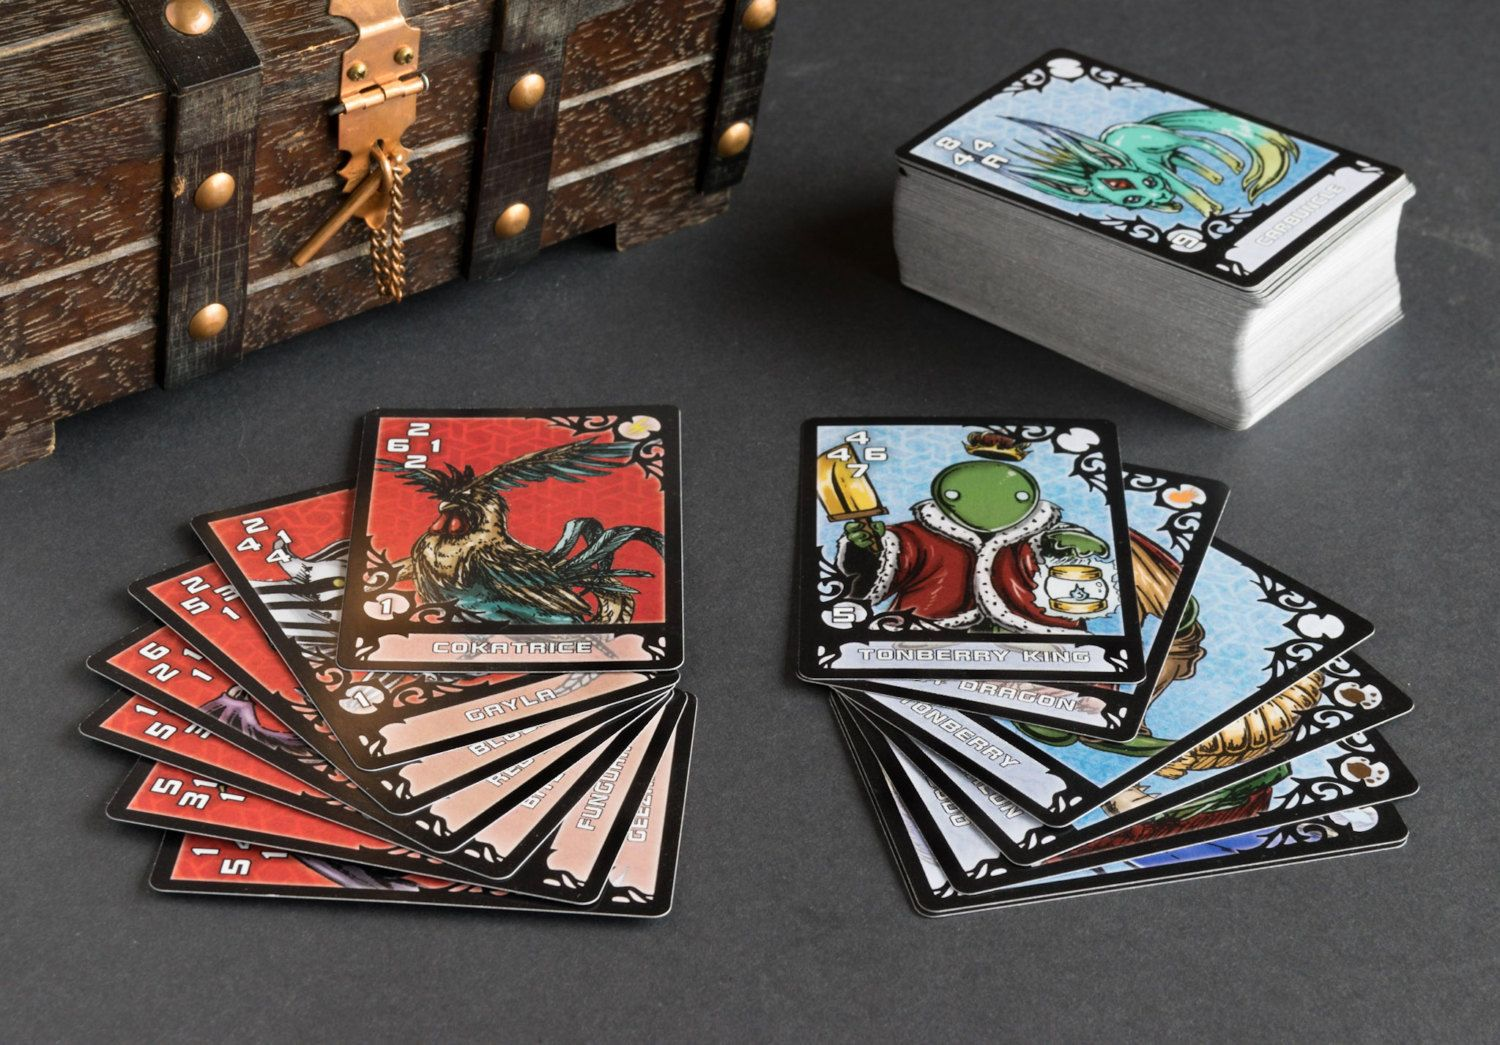 Triple Triad Real Life Cards Full Deck Designed By A Fan Cards Card Set Deck Of Cards